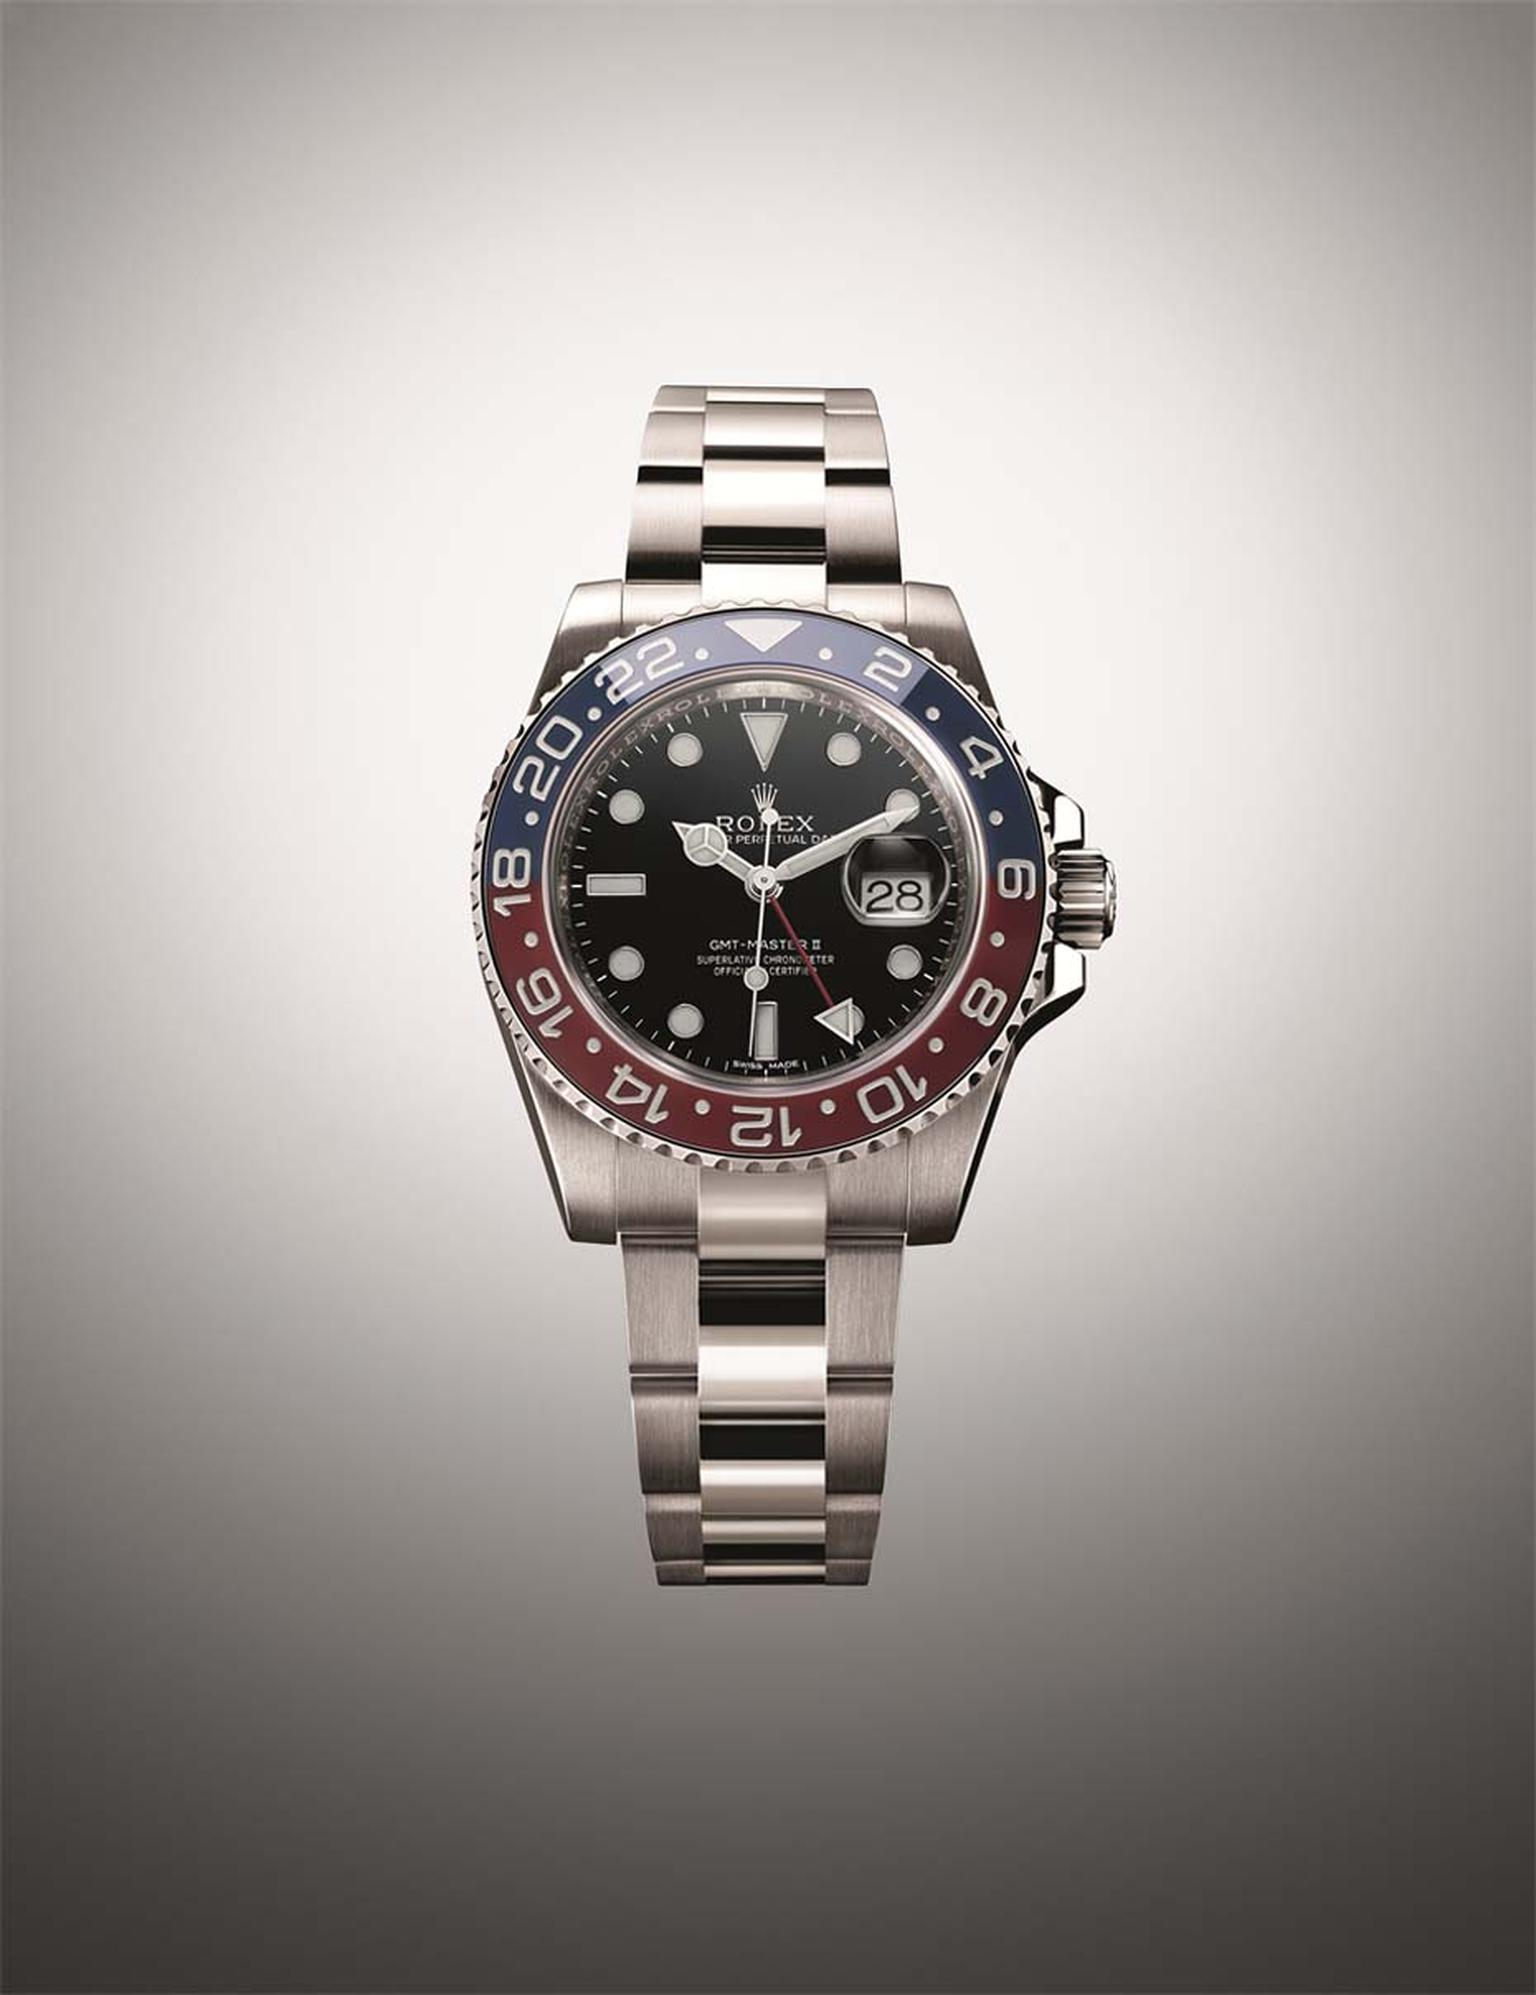 The Rolex GMT Master watch features a world first with its two-coloured red and blue 'Pepsi' Cerachrom ceramic bezel.